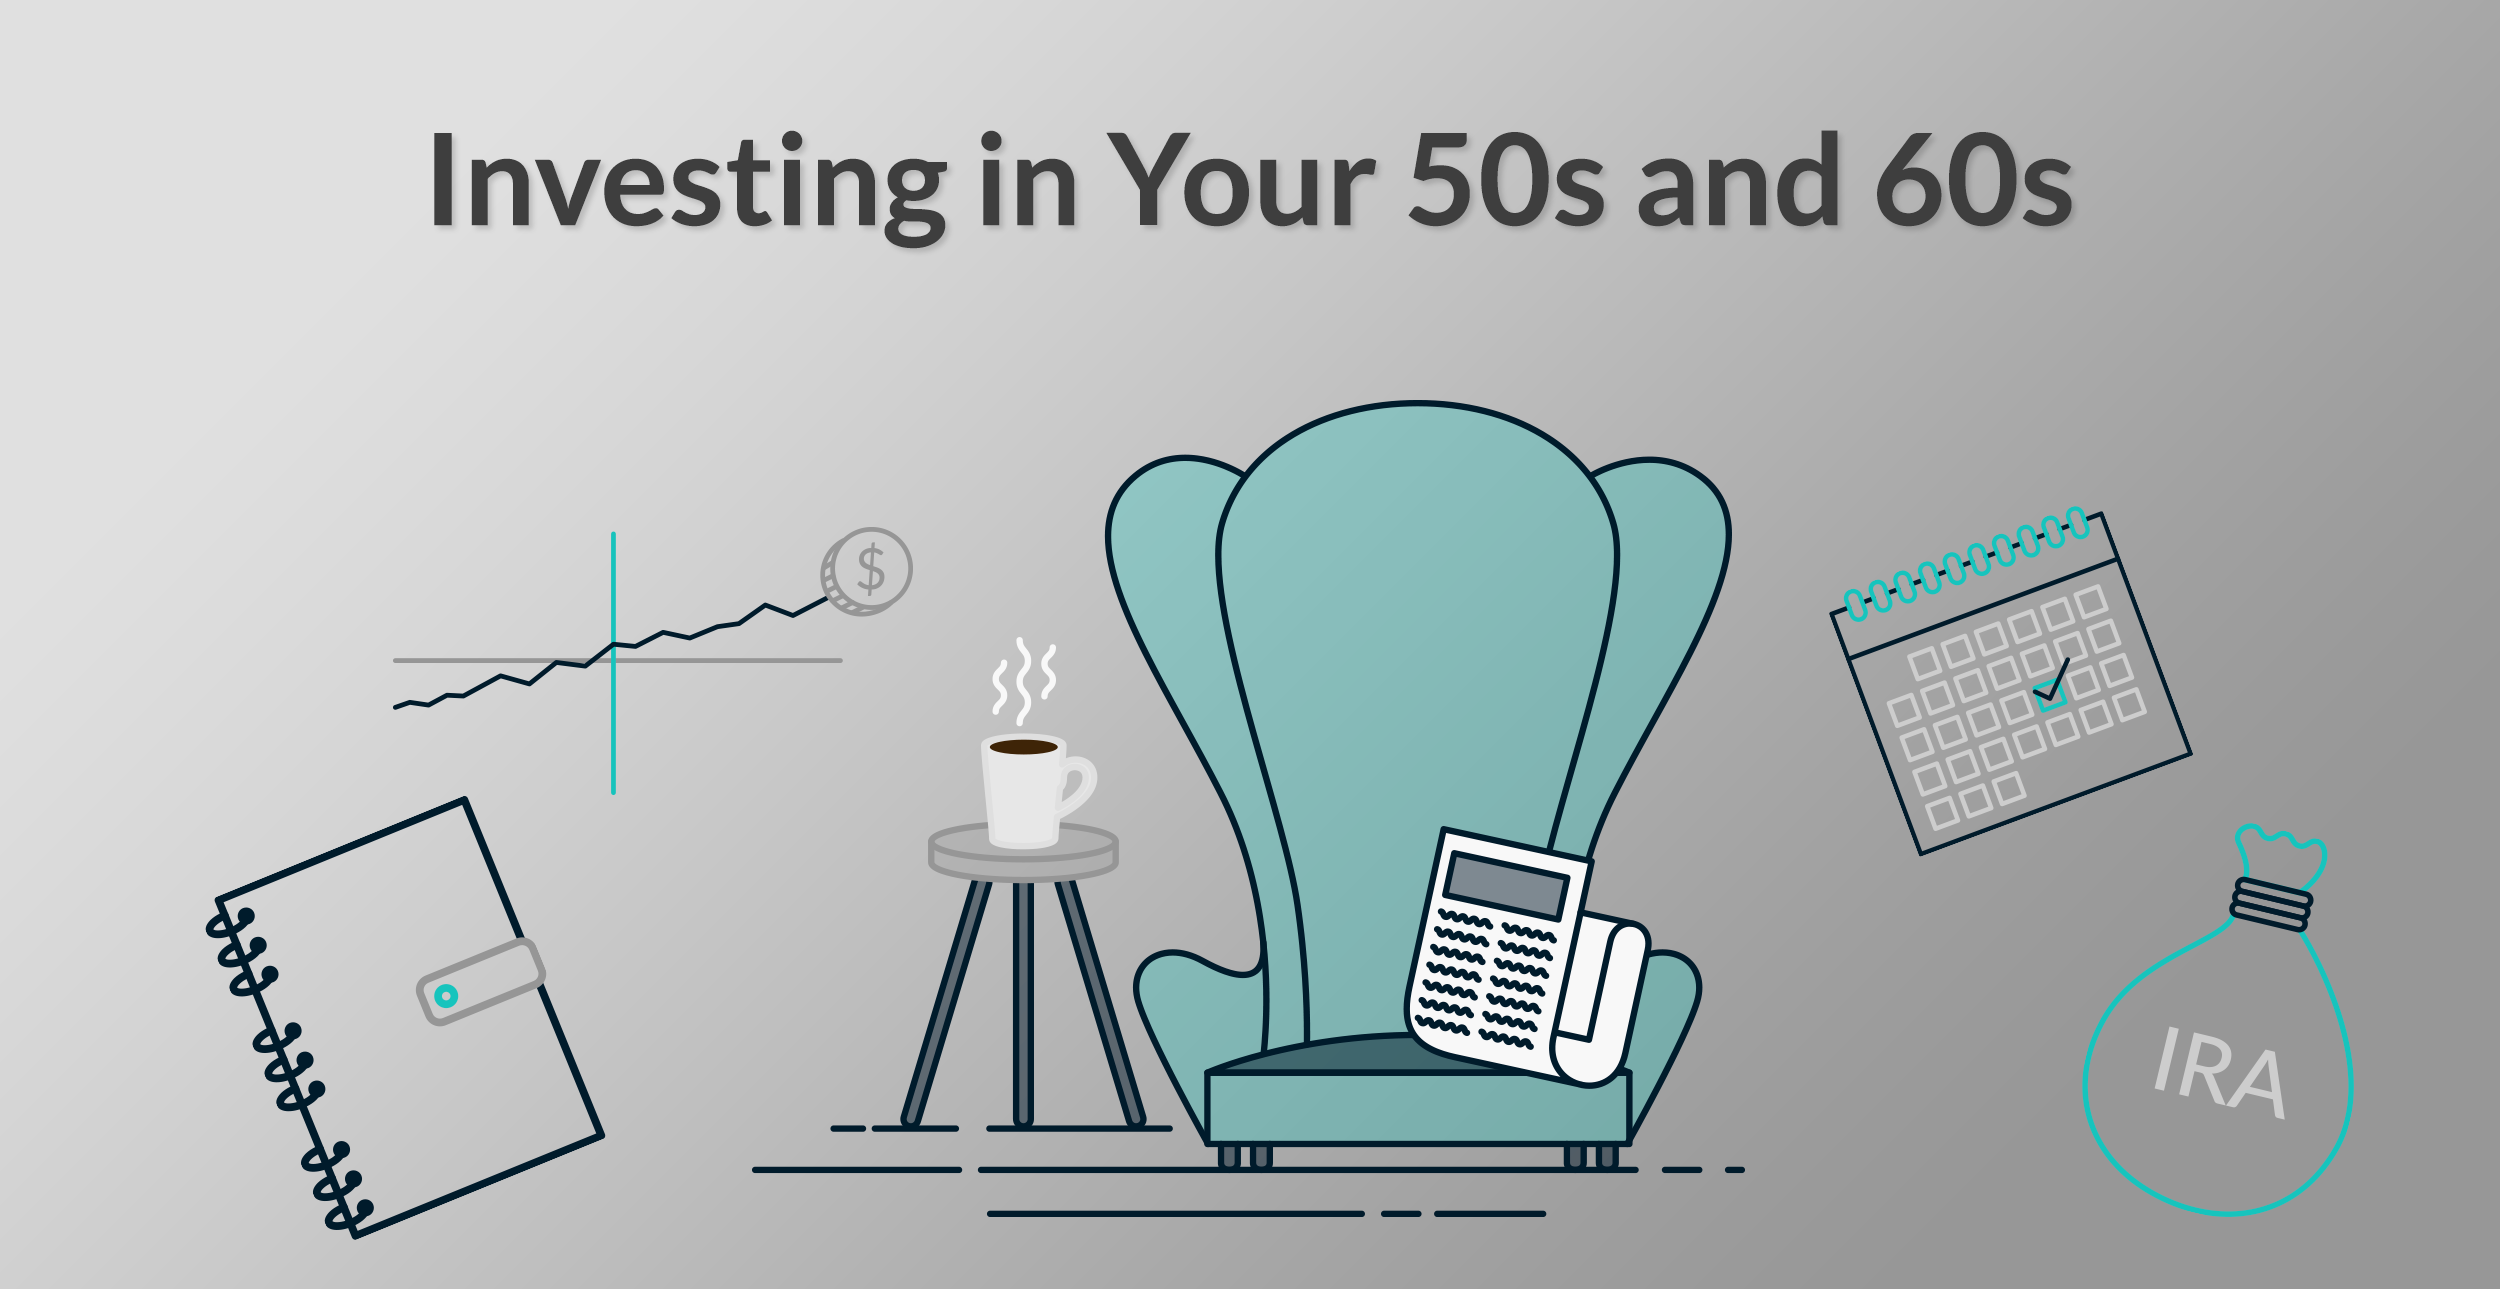 Investing in Your 50s and 60s